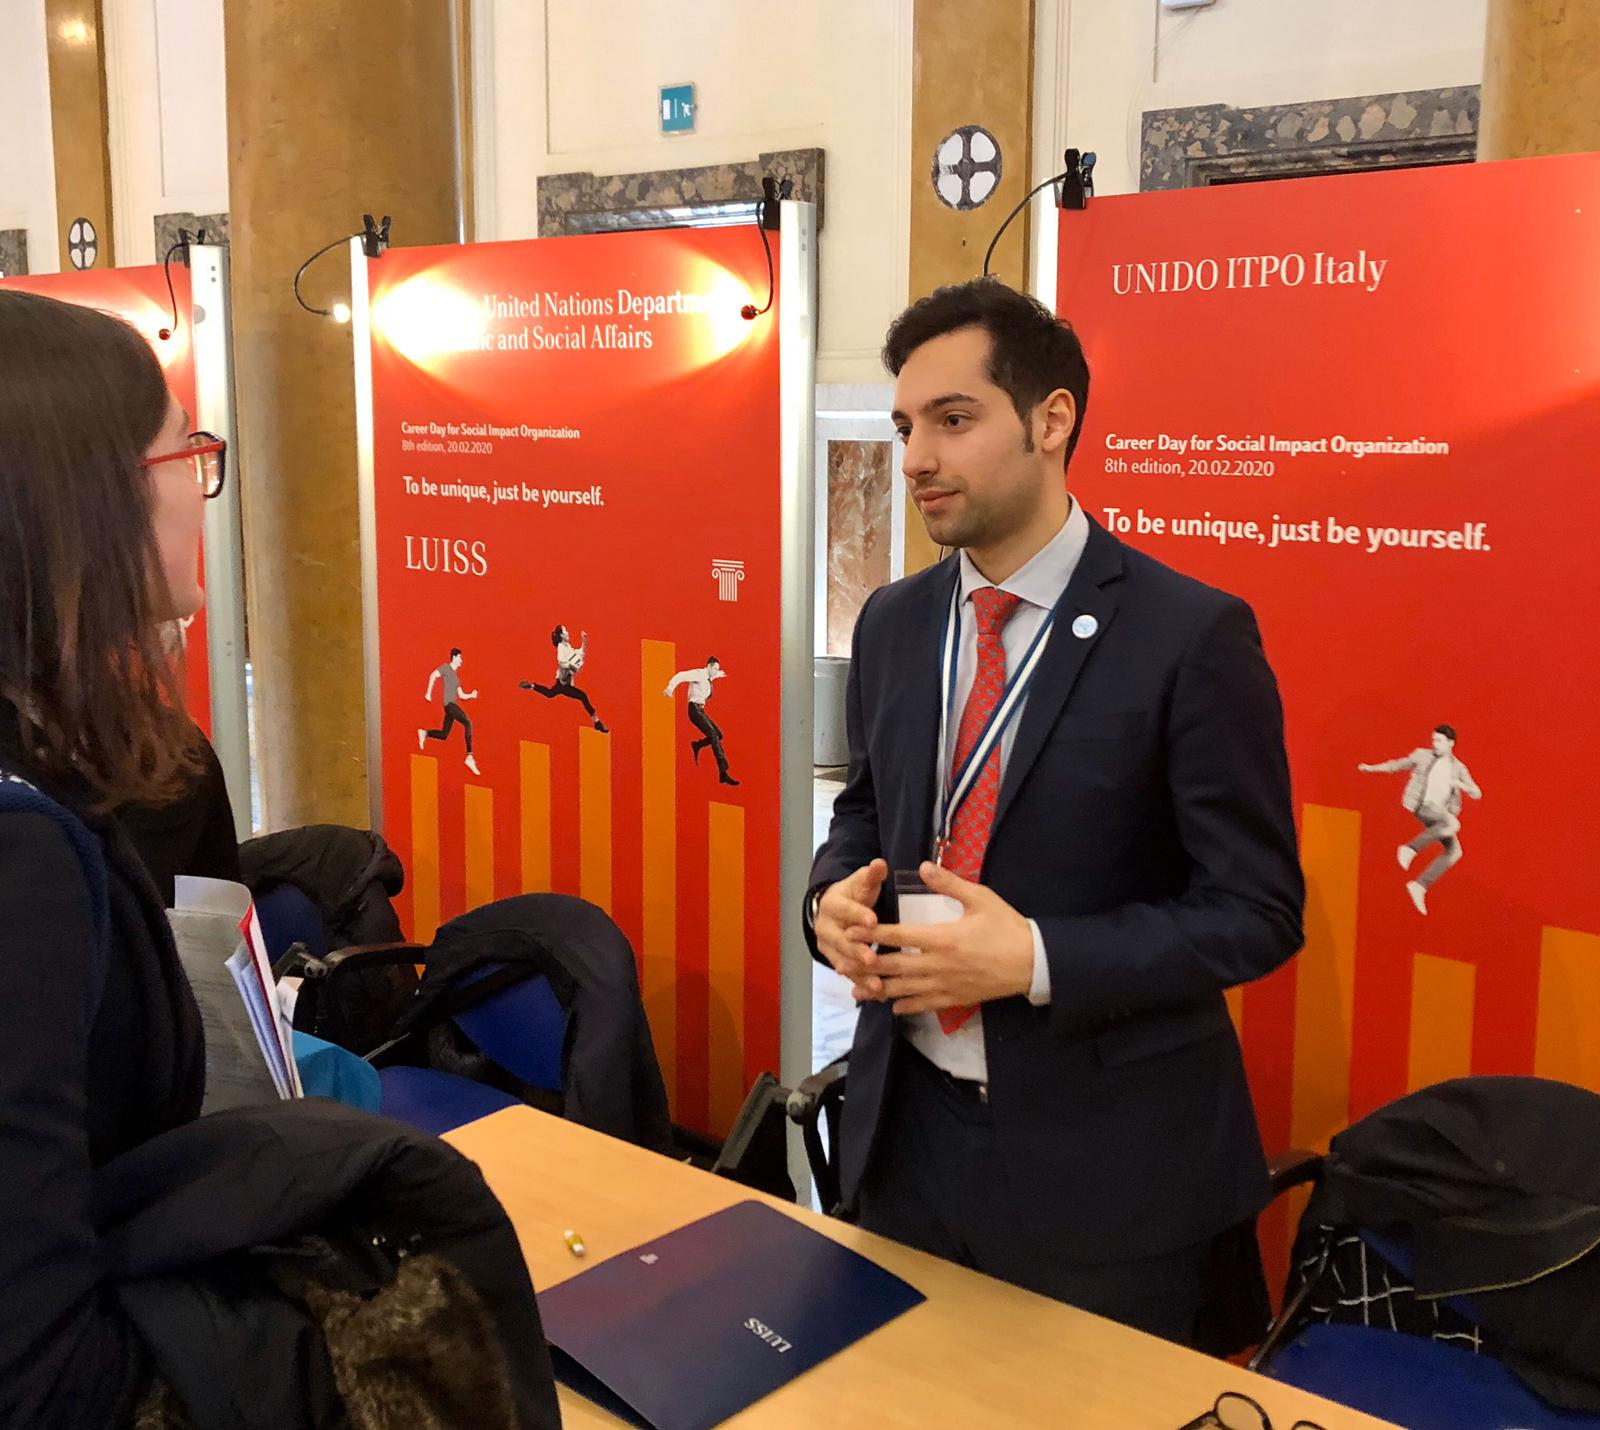 UNIDO ITPO Italy participated in the 8th of LUISS Career Day for Social impact Organization